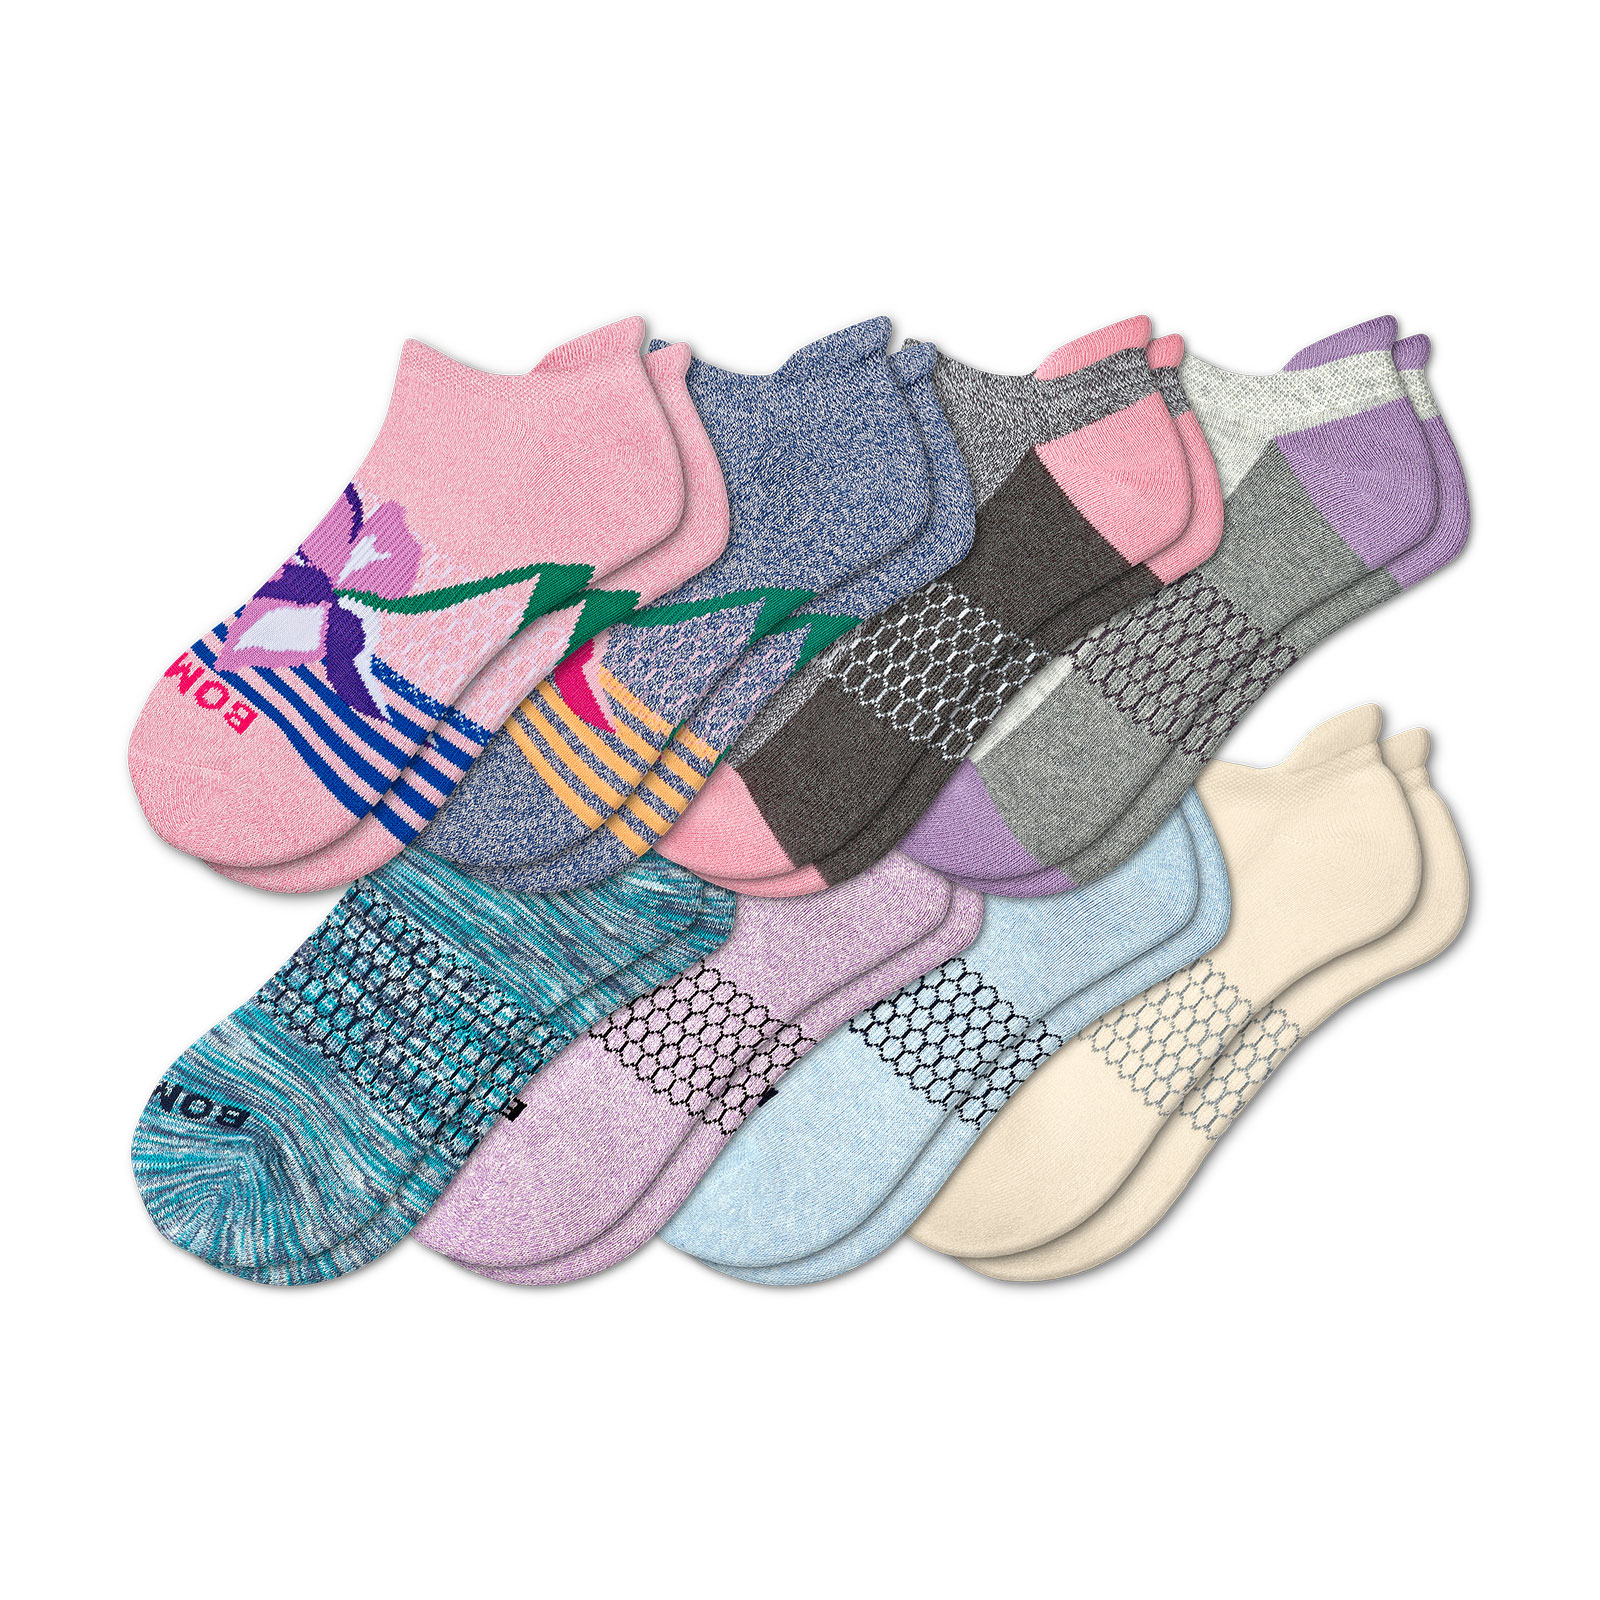 Mother's-Day-Favorites-Ankle-8-Pack.jpg